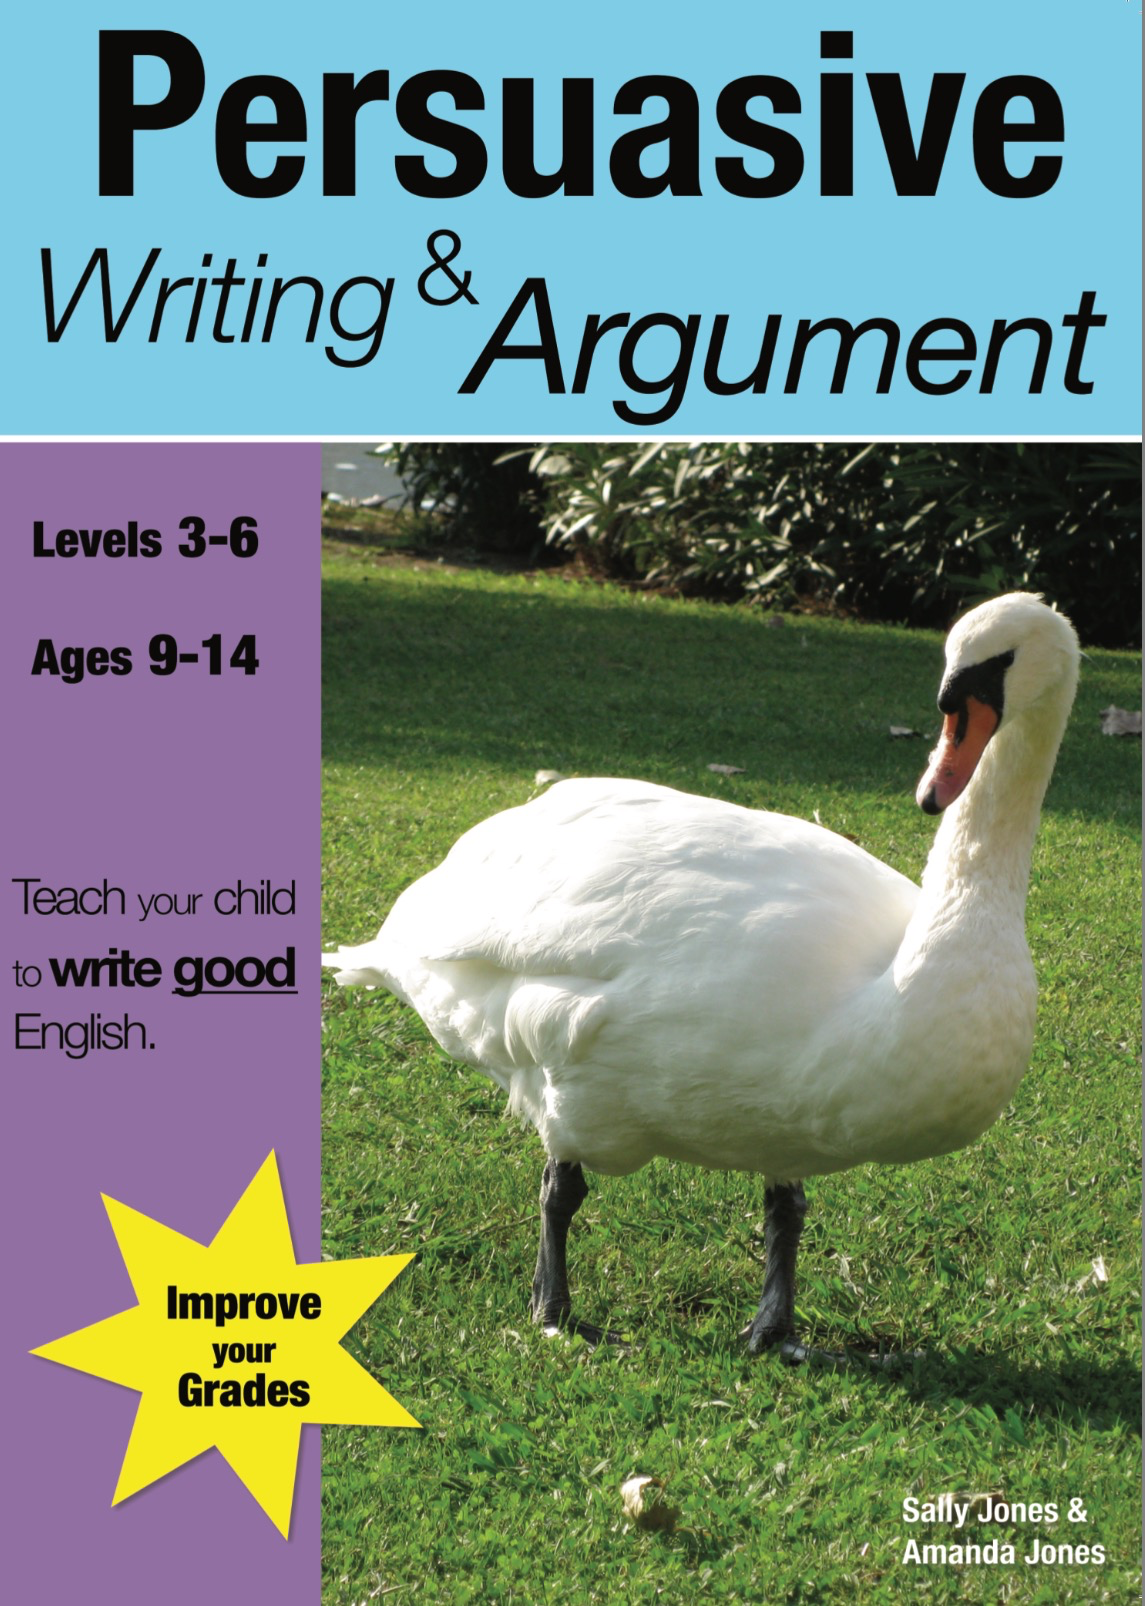 Teach Your Child To Write Good English Series (Books 1-3) (9-14 years) Print Versions